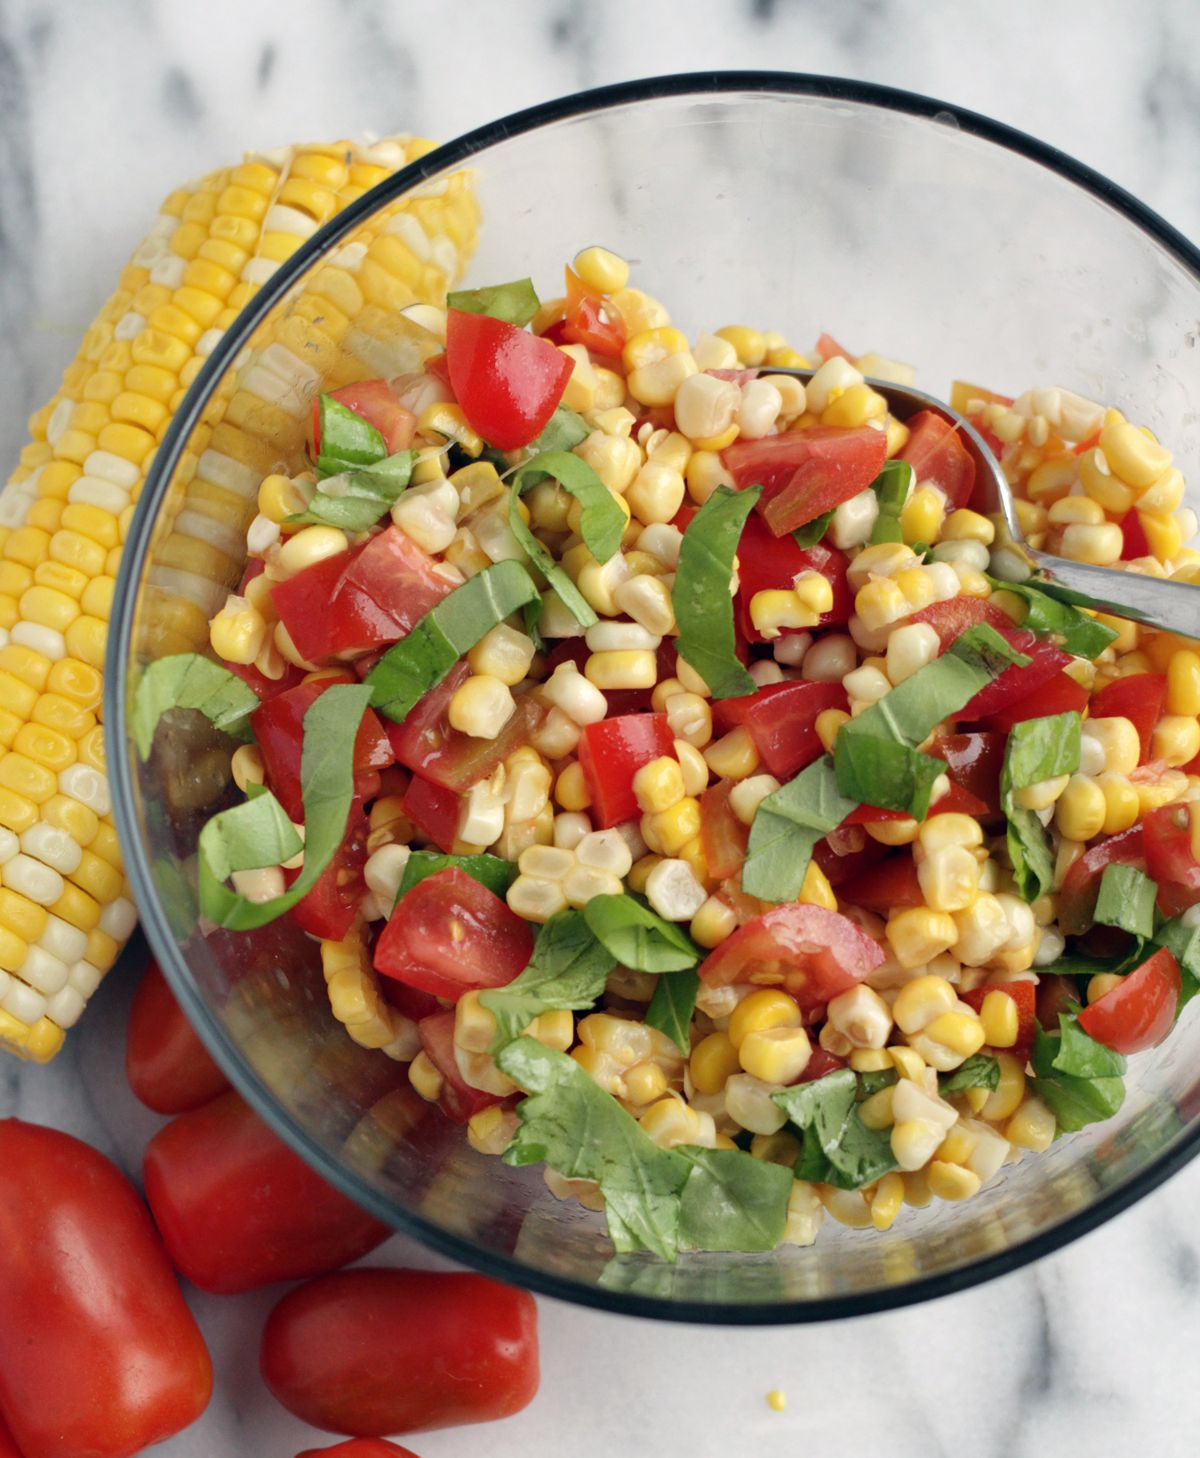 Corn and Tomato salad with Balsamic Glaze